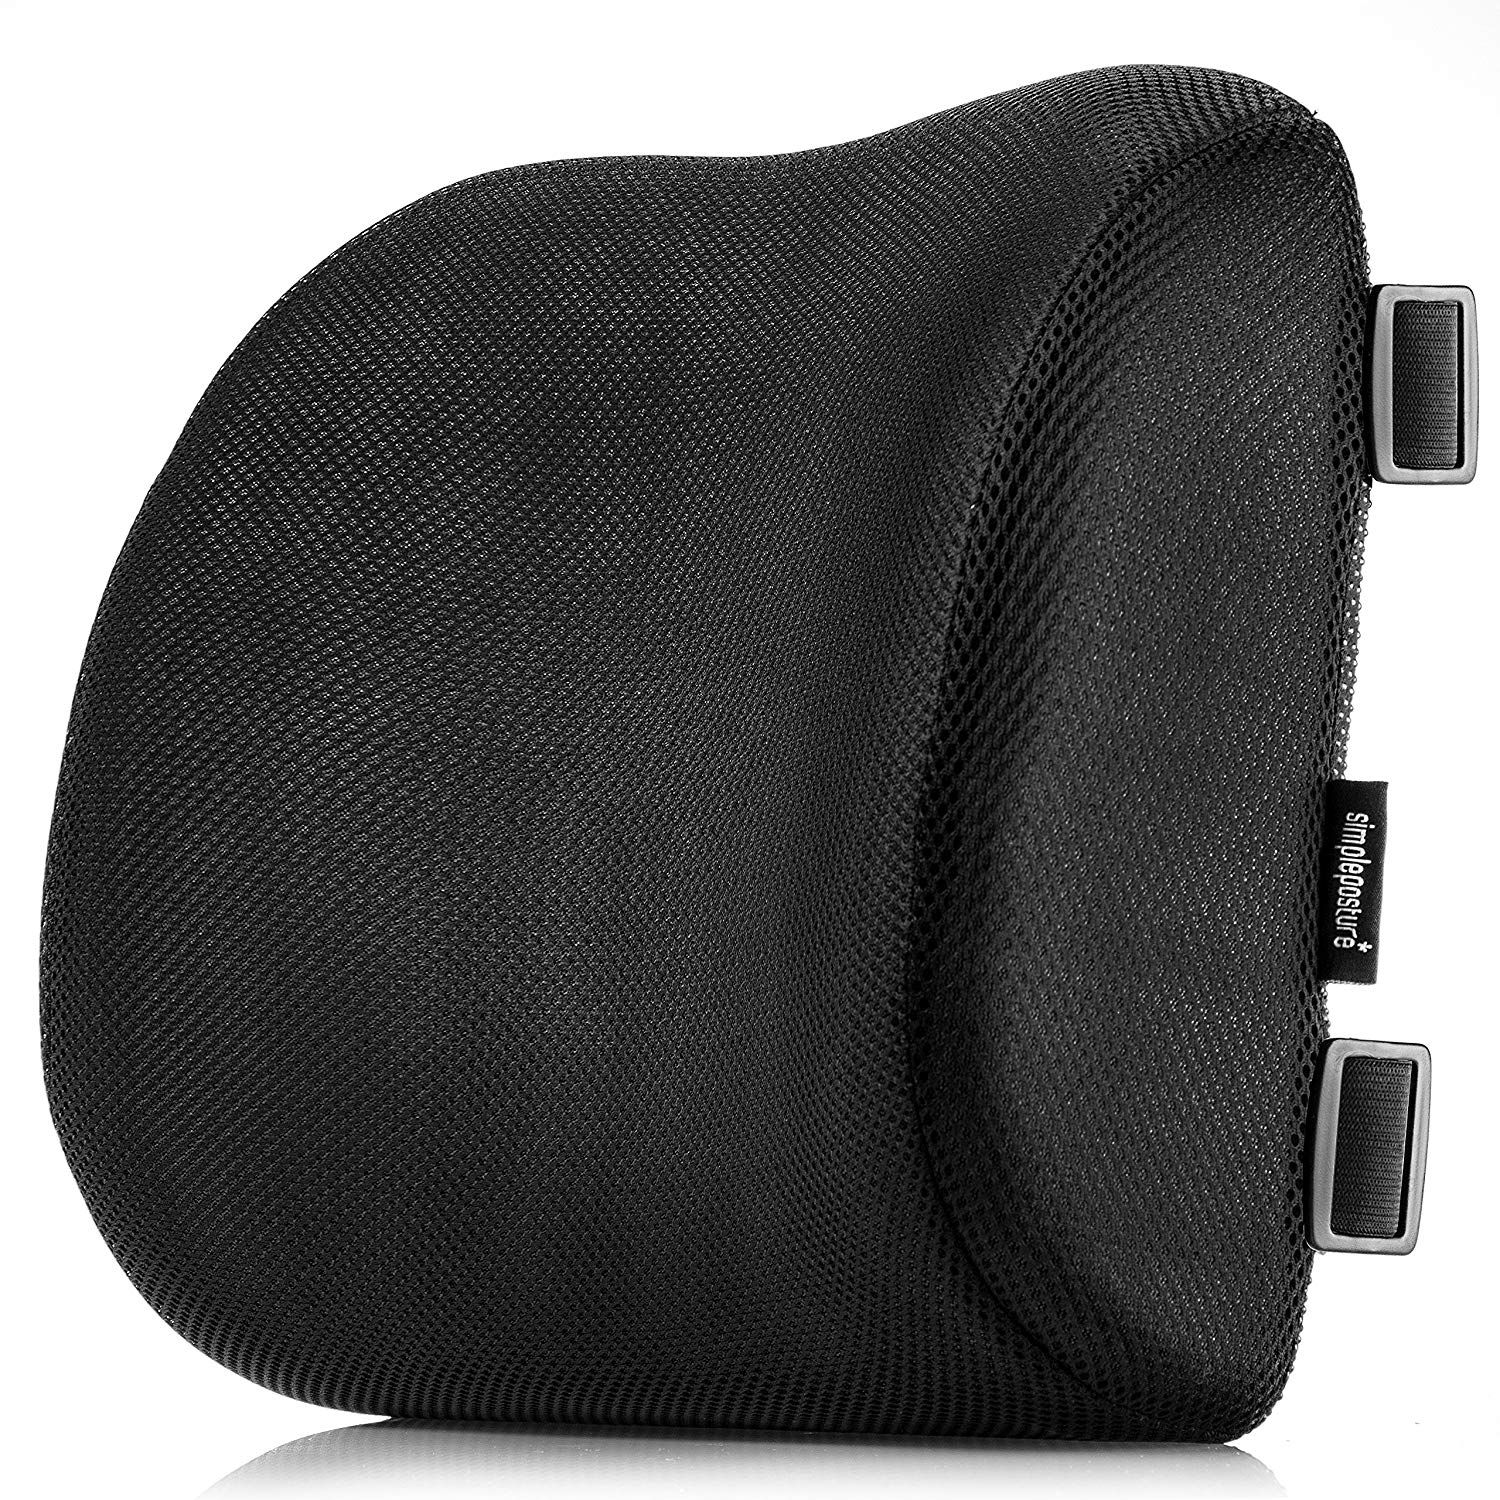 SimplePosture Lumbar Pillow Review by www.snoremagazine.com